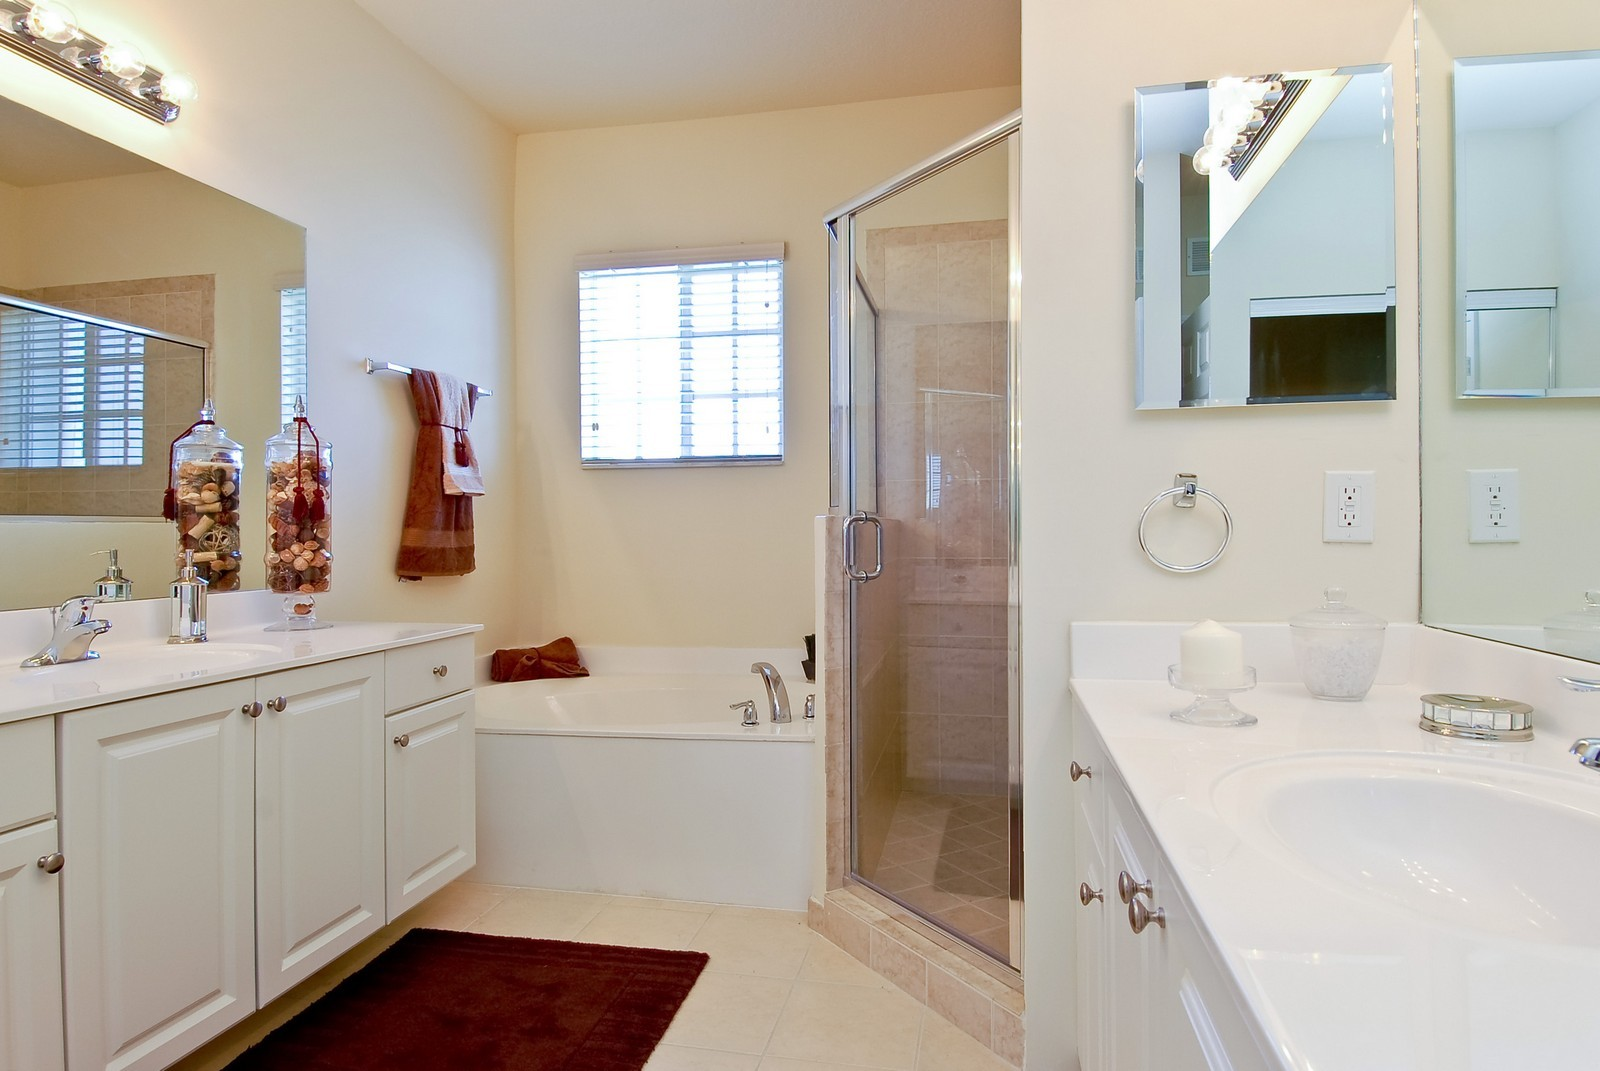 Real Estate Photography - 3169 NW 32nd St, Cayman Model, Oakland Park, FL, 33309 - Master Bathroom